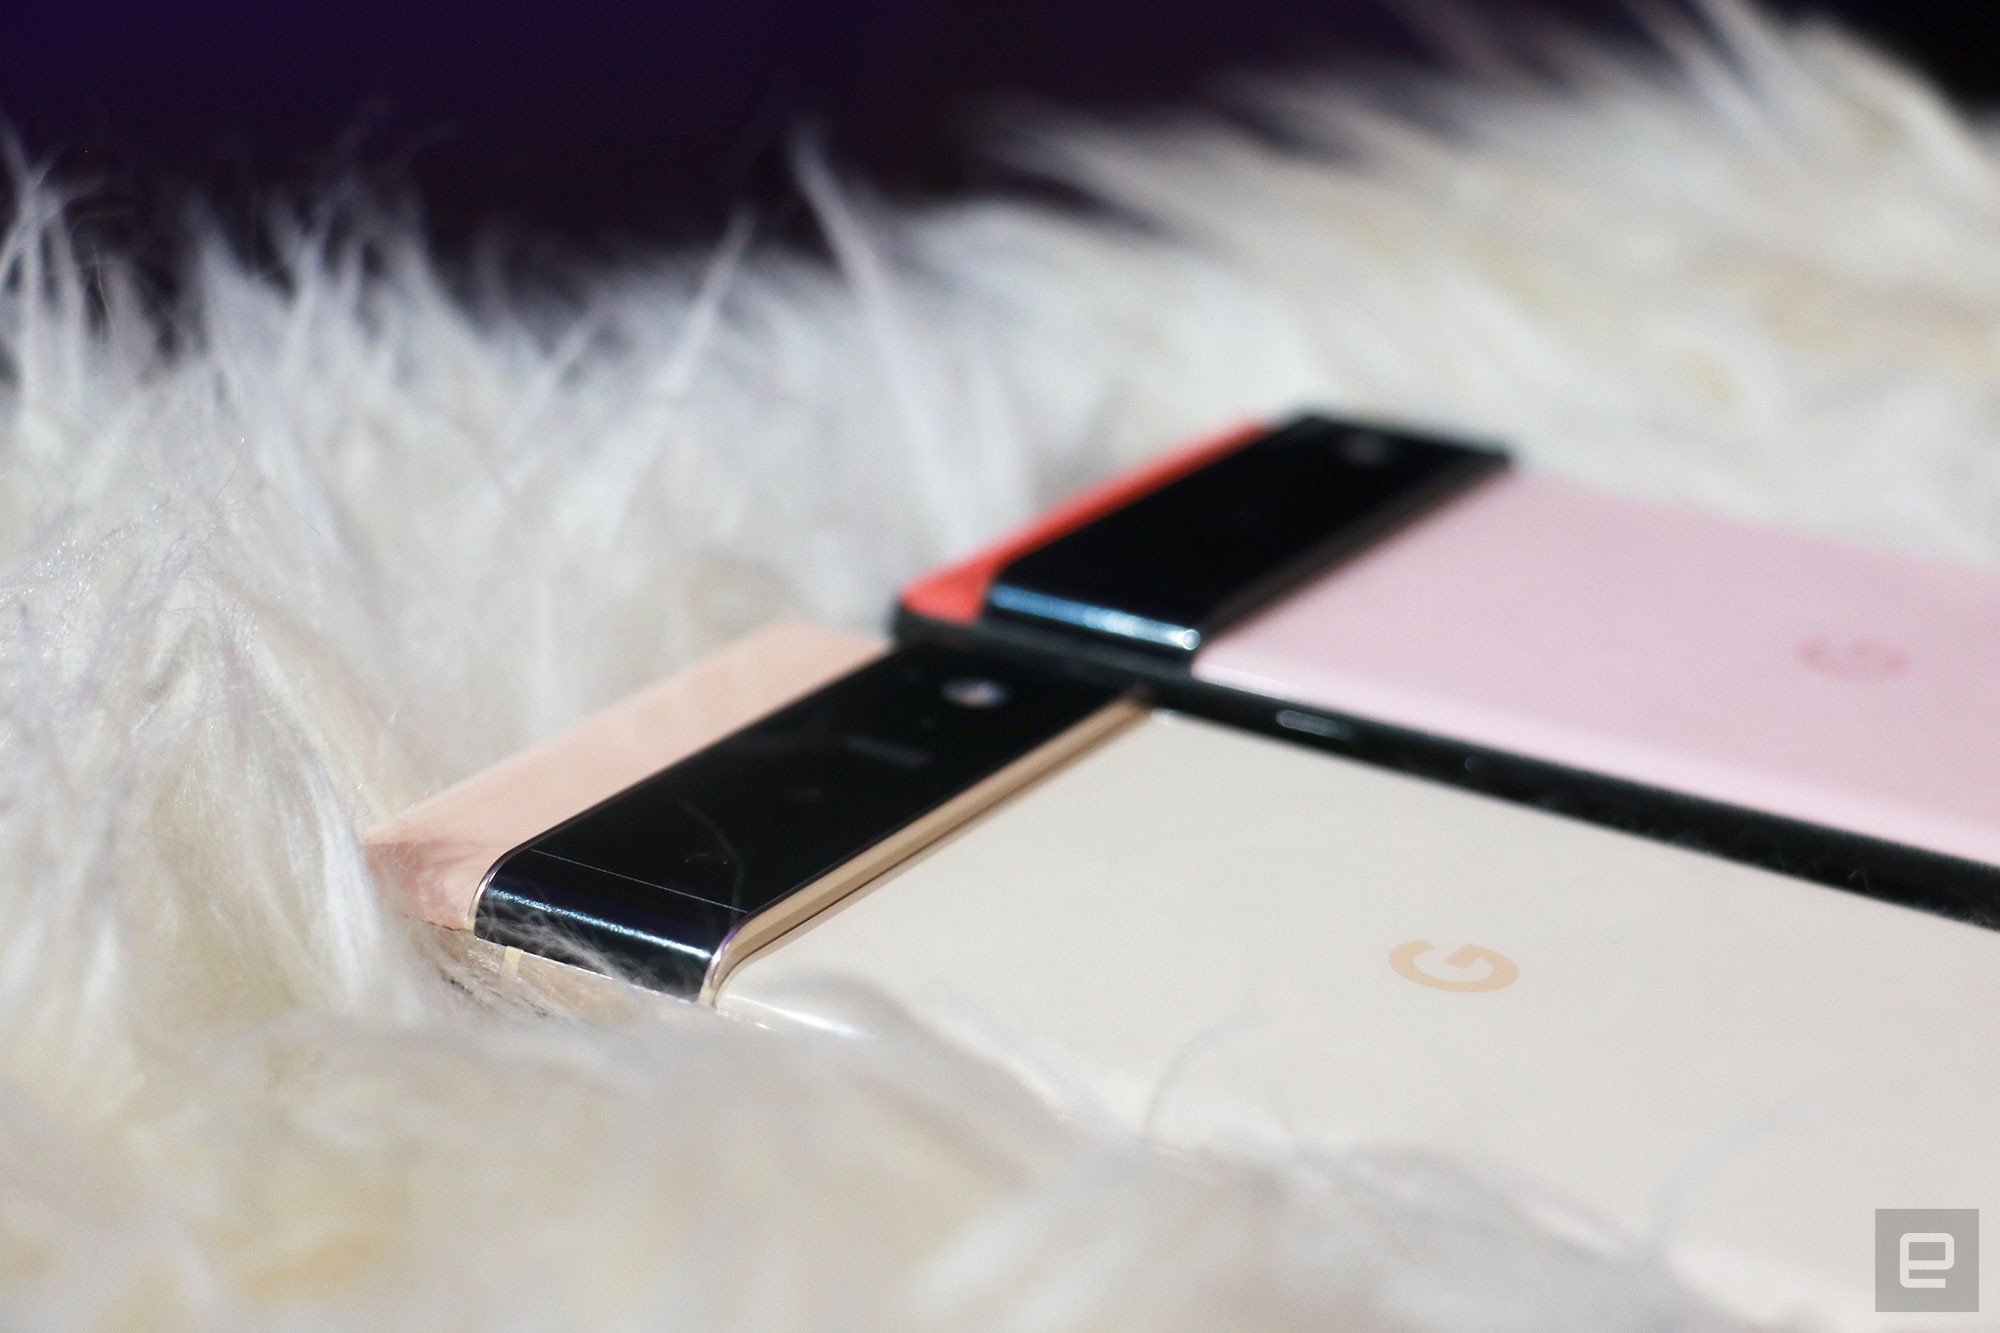 Close ups of the Pixel 6 and Pixel 6 Pro camera bumps as the phones are laid out on a furry surface.